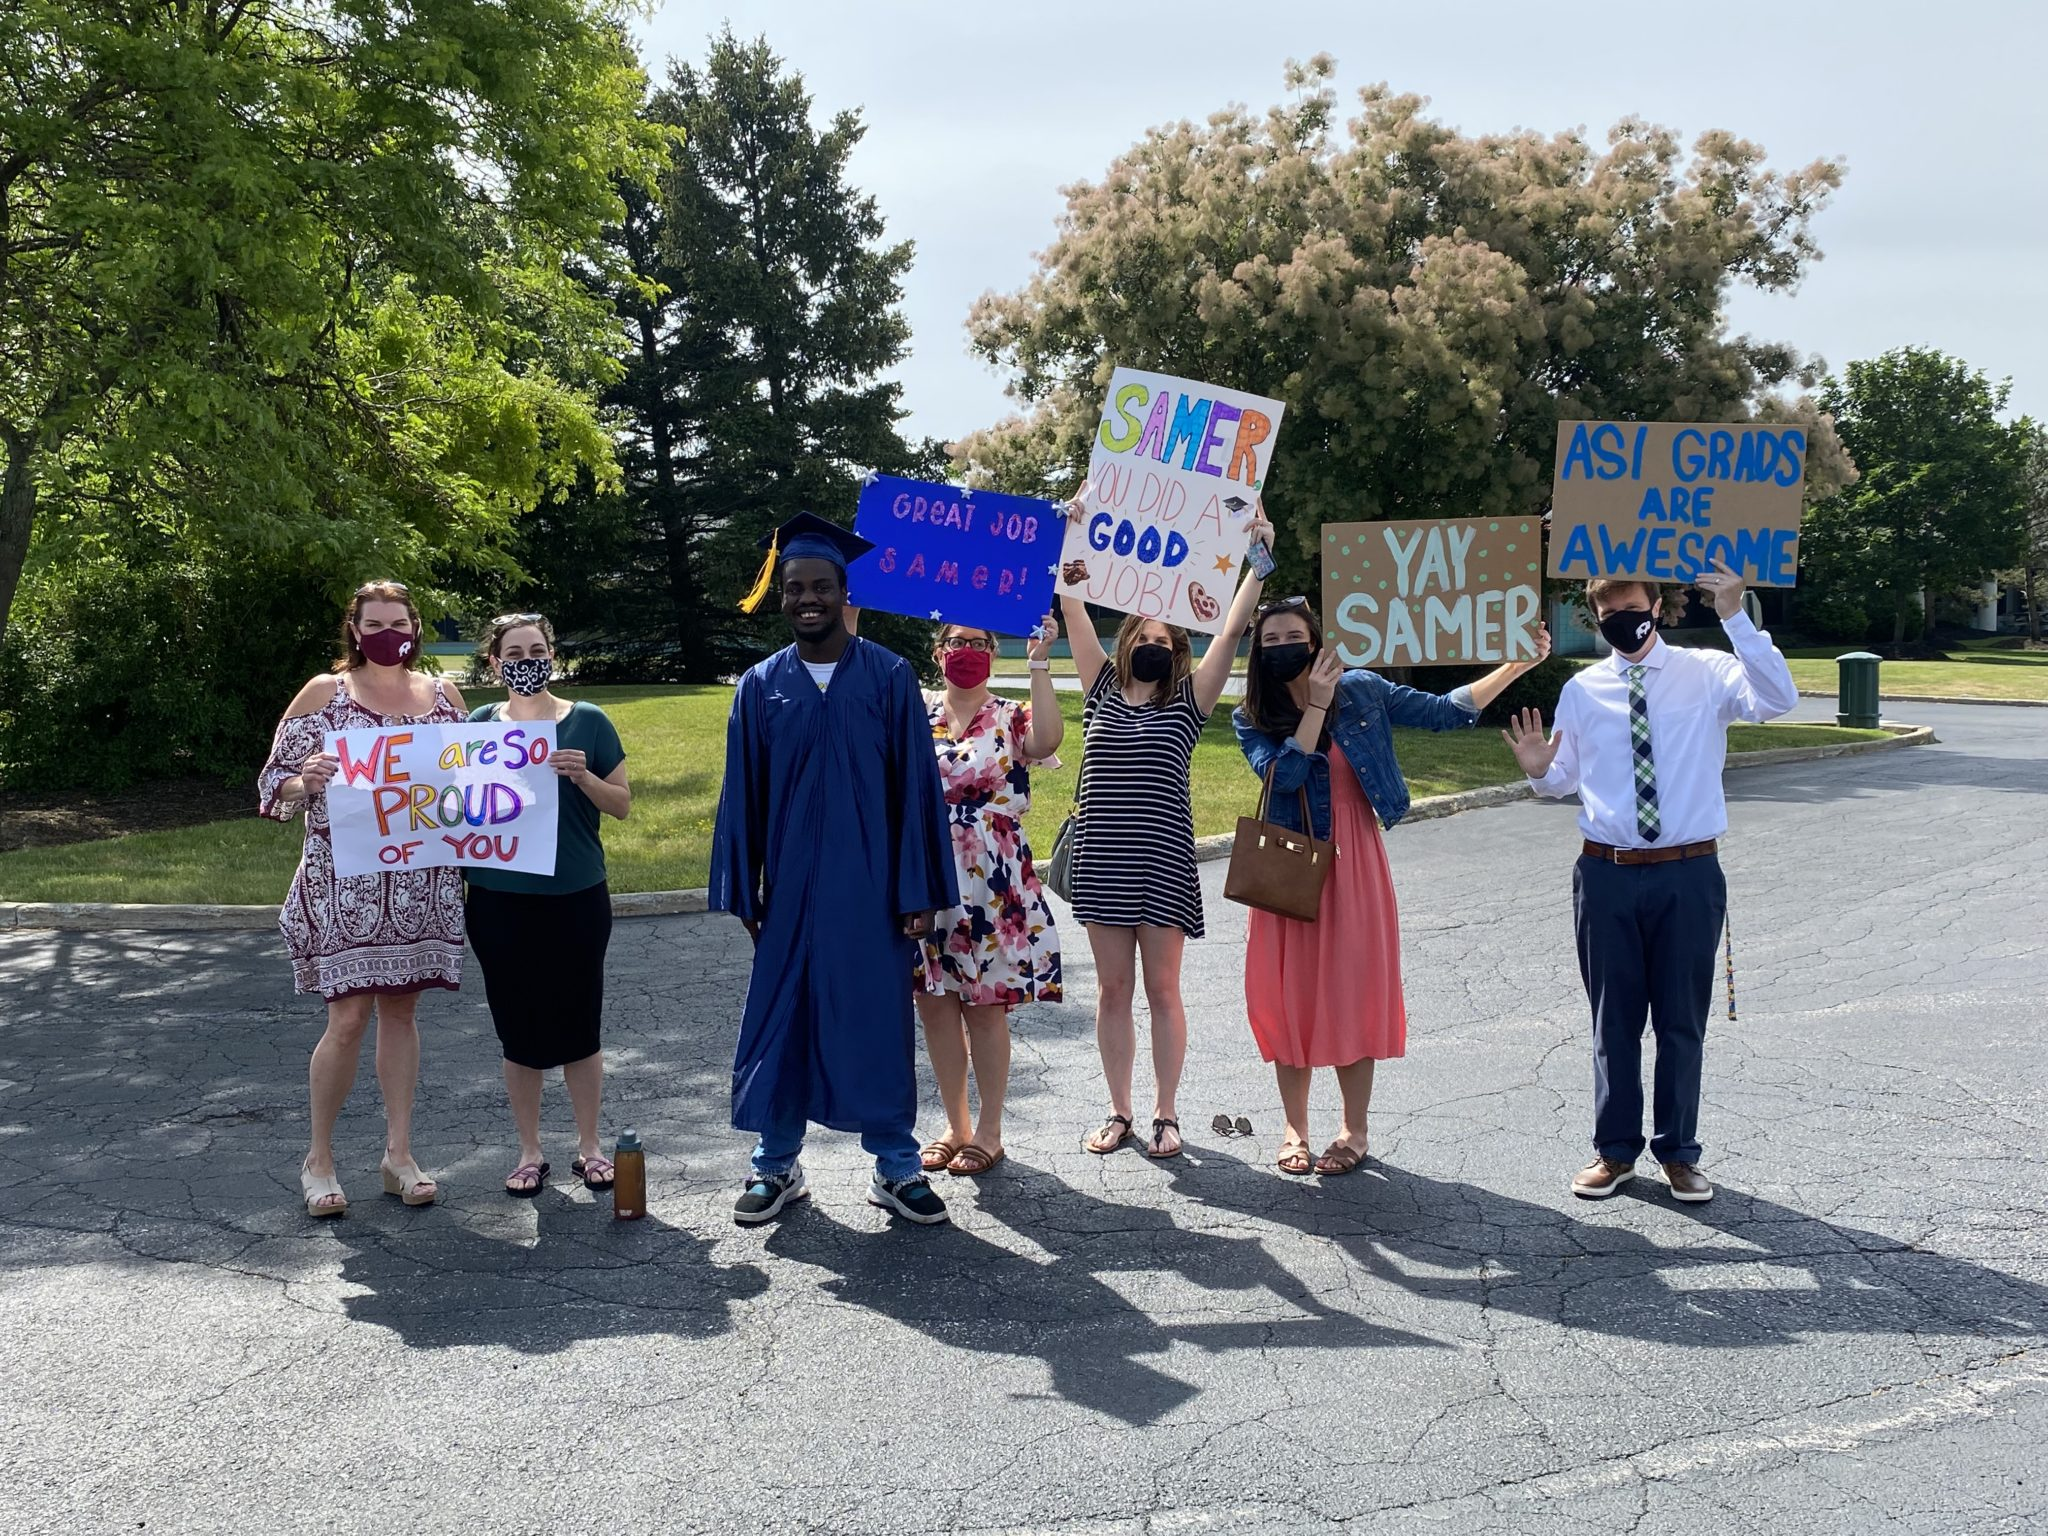 Samer poses with his teachers and Community Services staff as they hold up signs of support and congratulations.